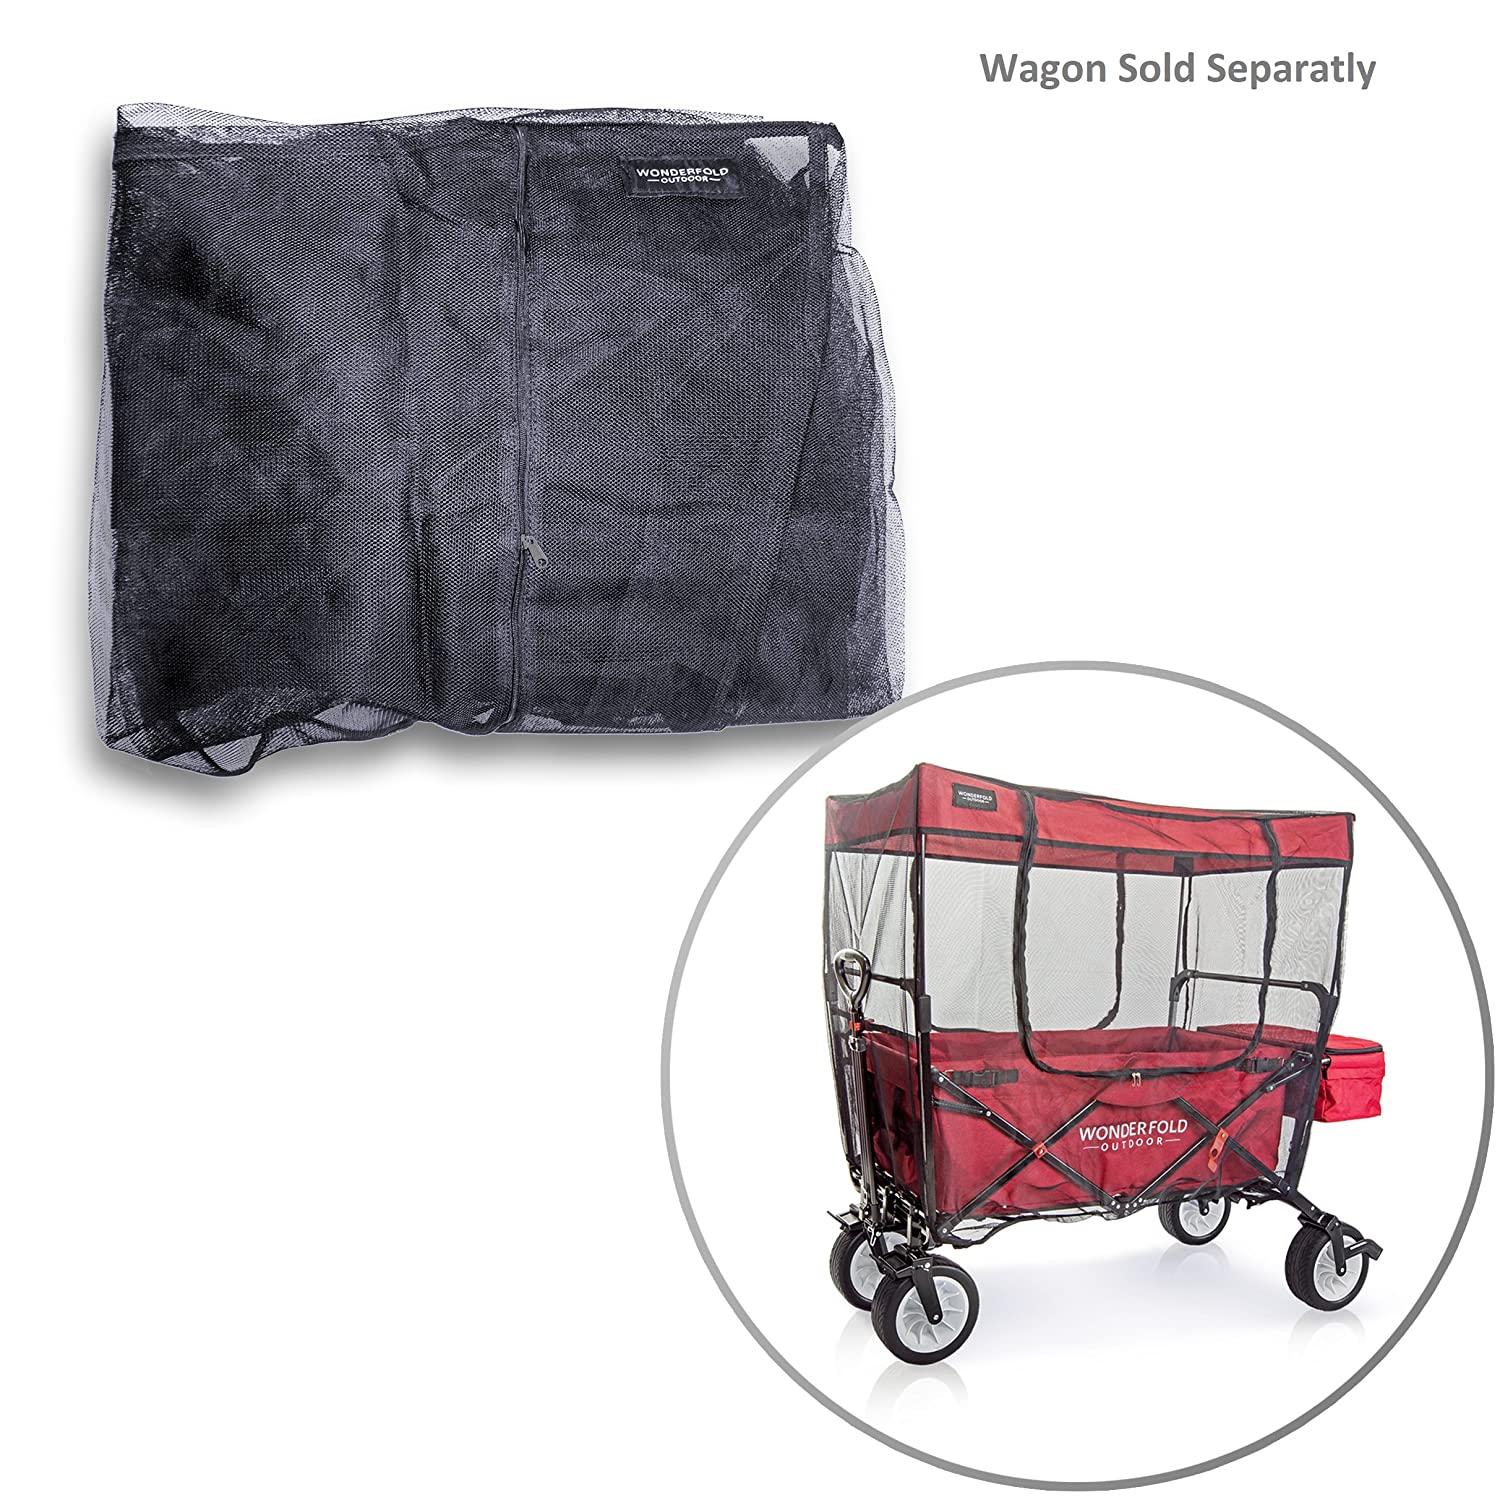 WonderFold Outdoor Mosquito NET For canopy folding wagon (Insects Bugs Netting ONLY) EverydaySports